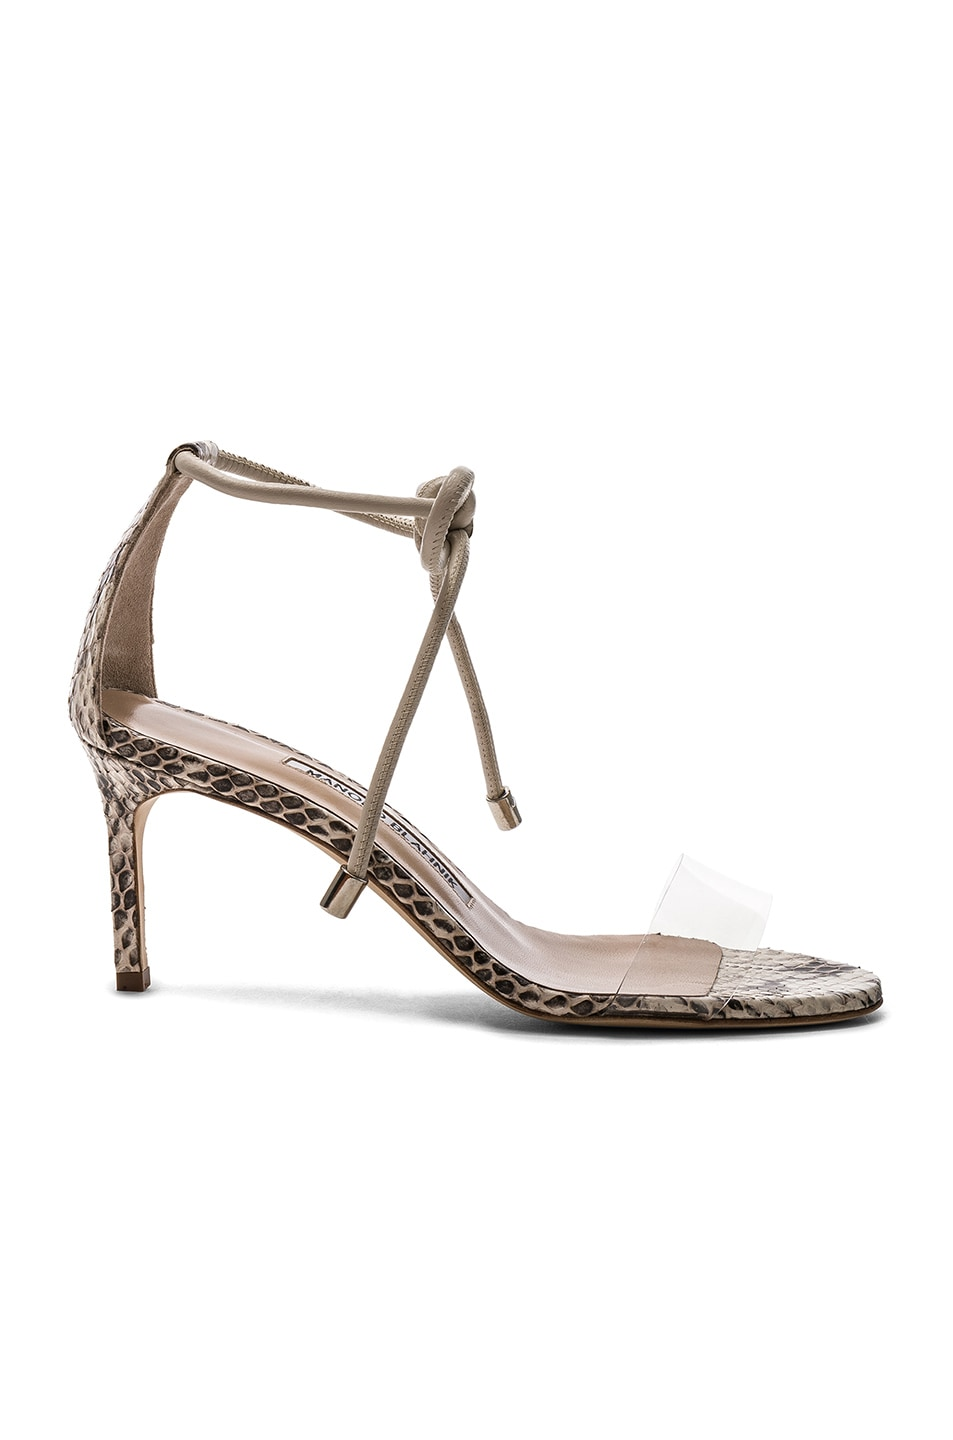 Image 1 of Manolo Blahnik Estro 70 Sandals in White & Black Natural Watersnake